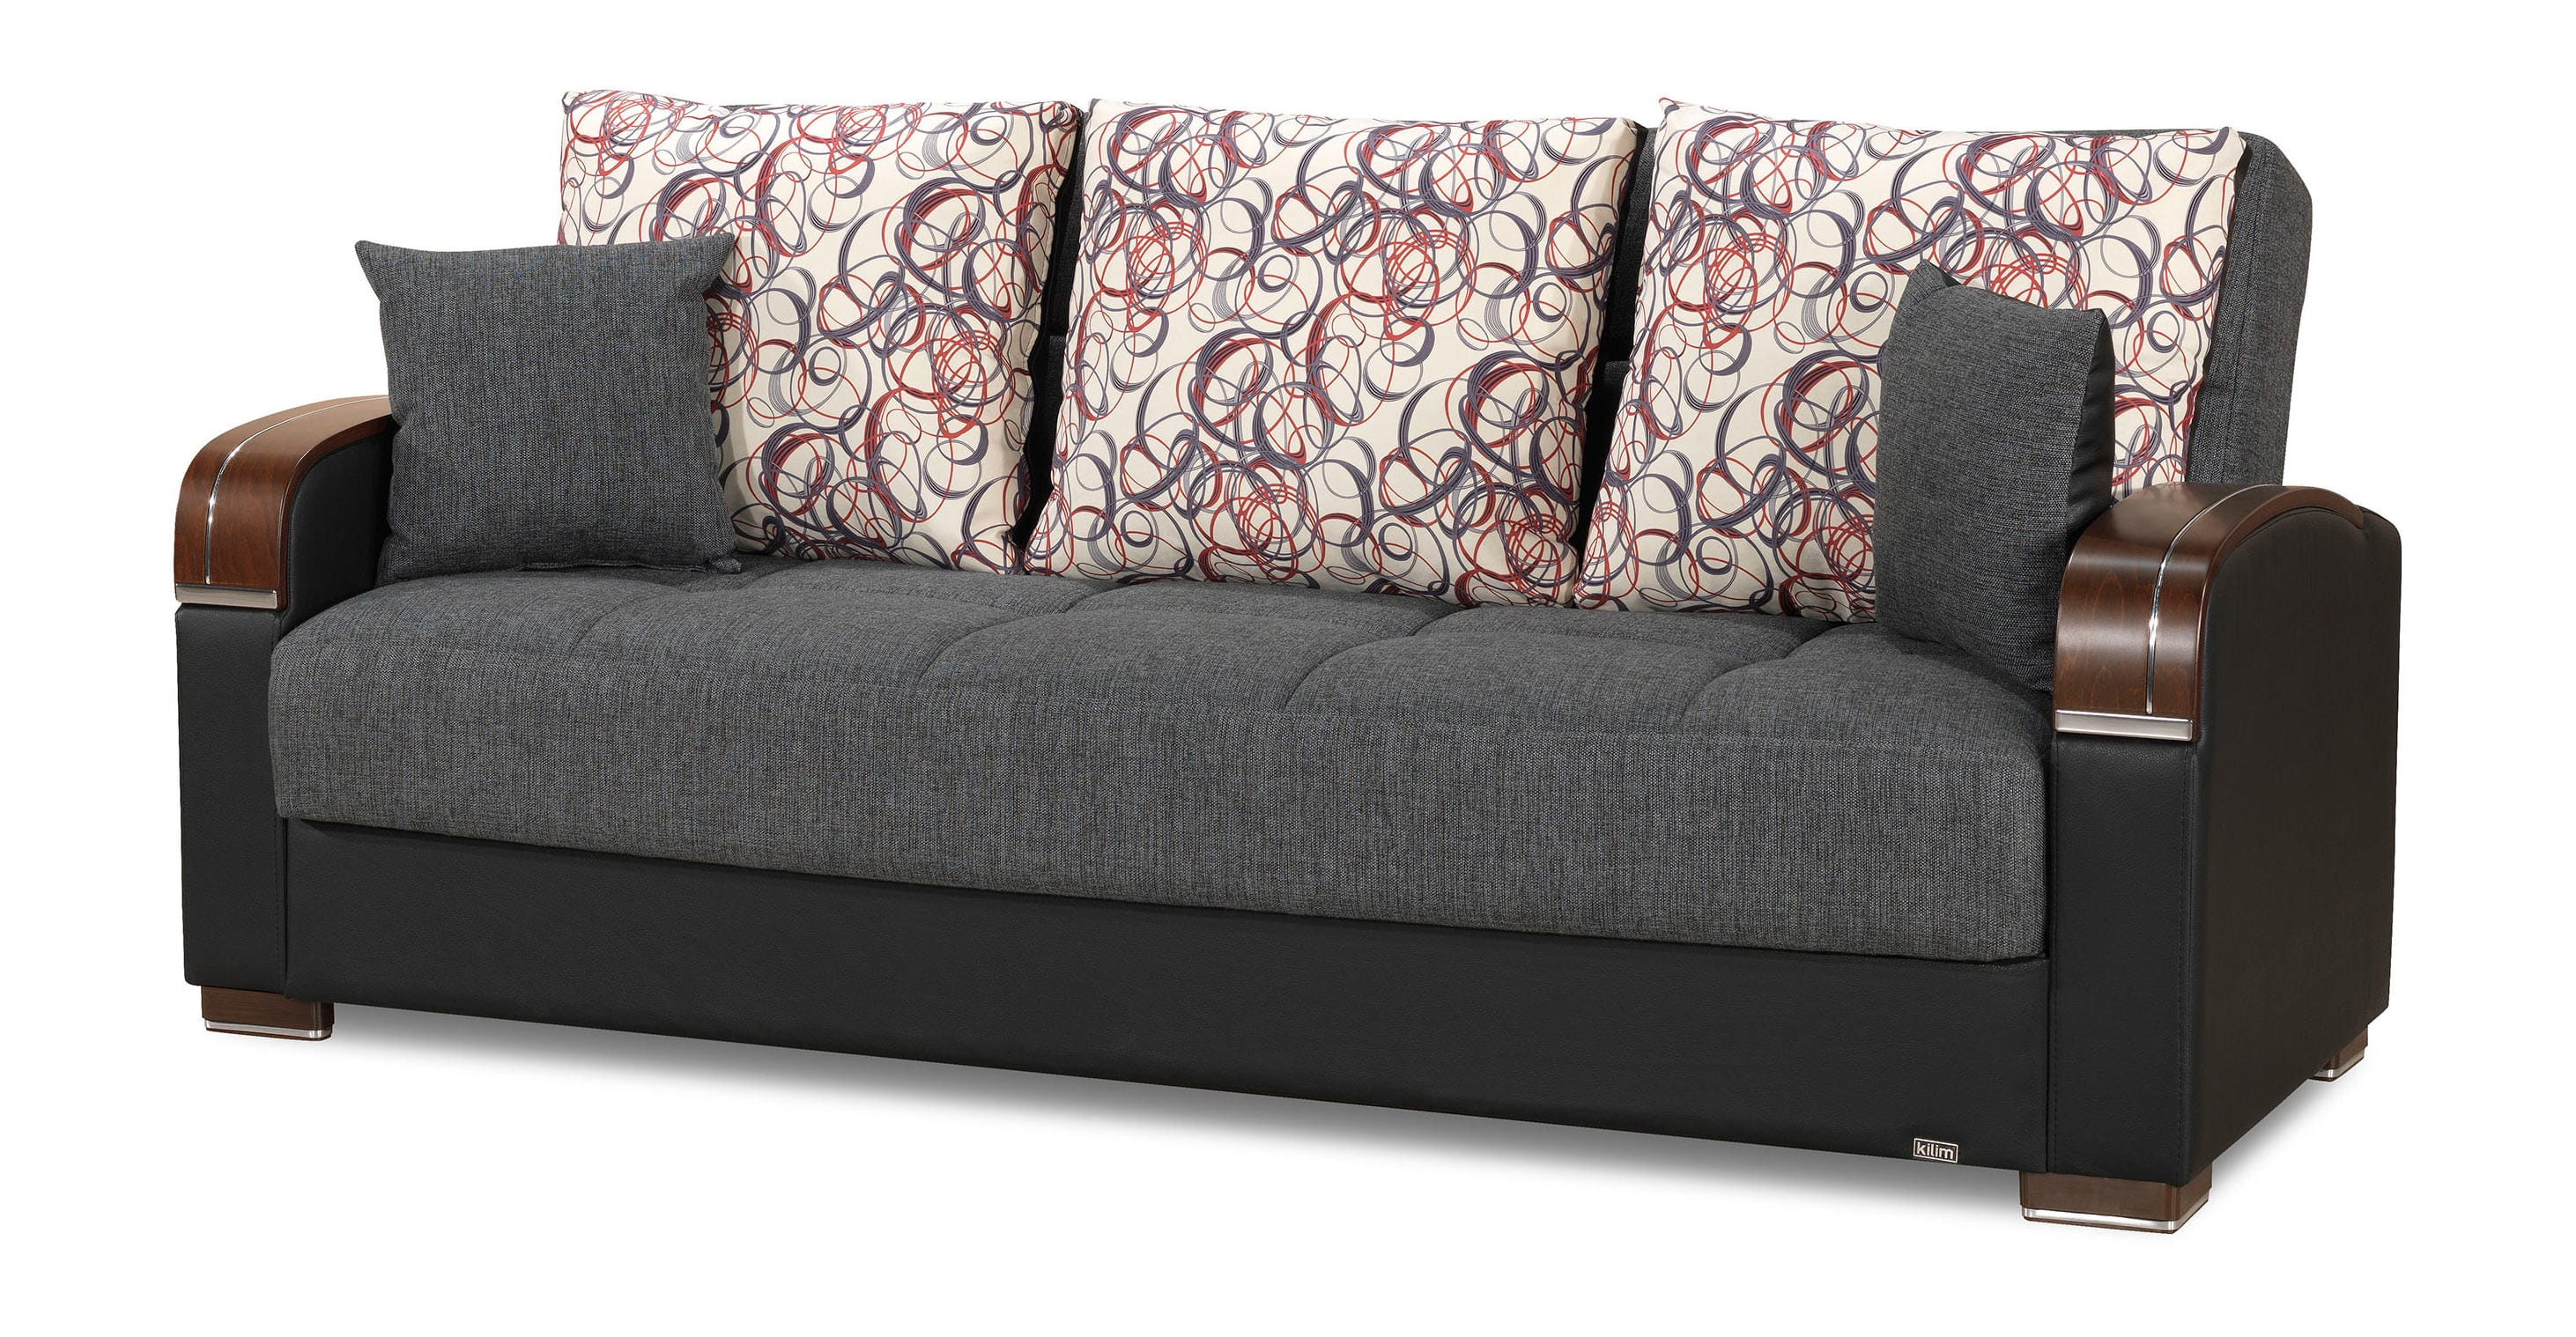 Floor Sample Mobimax Grey Convertible Sofa Bed By Casamode